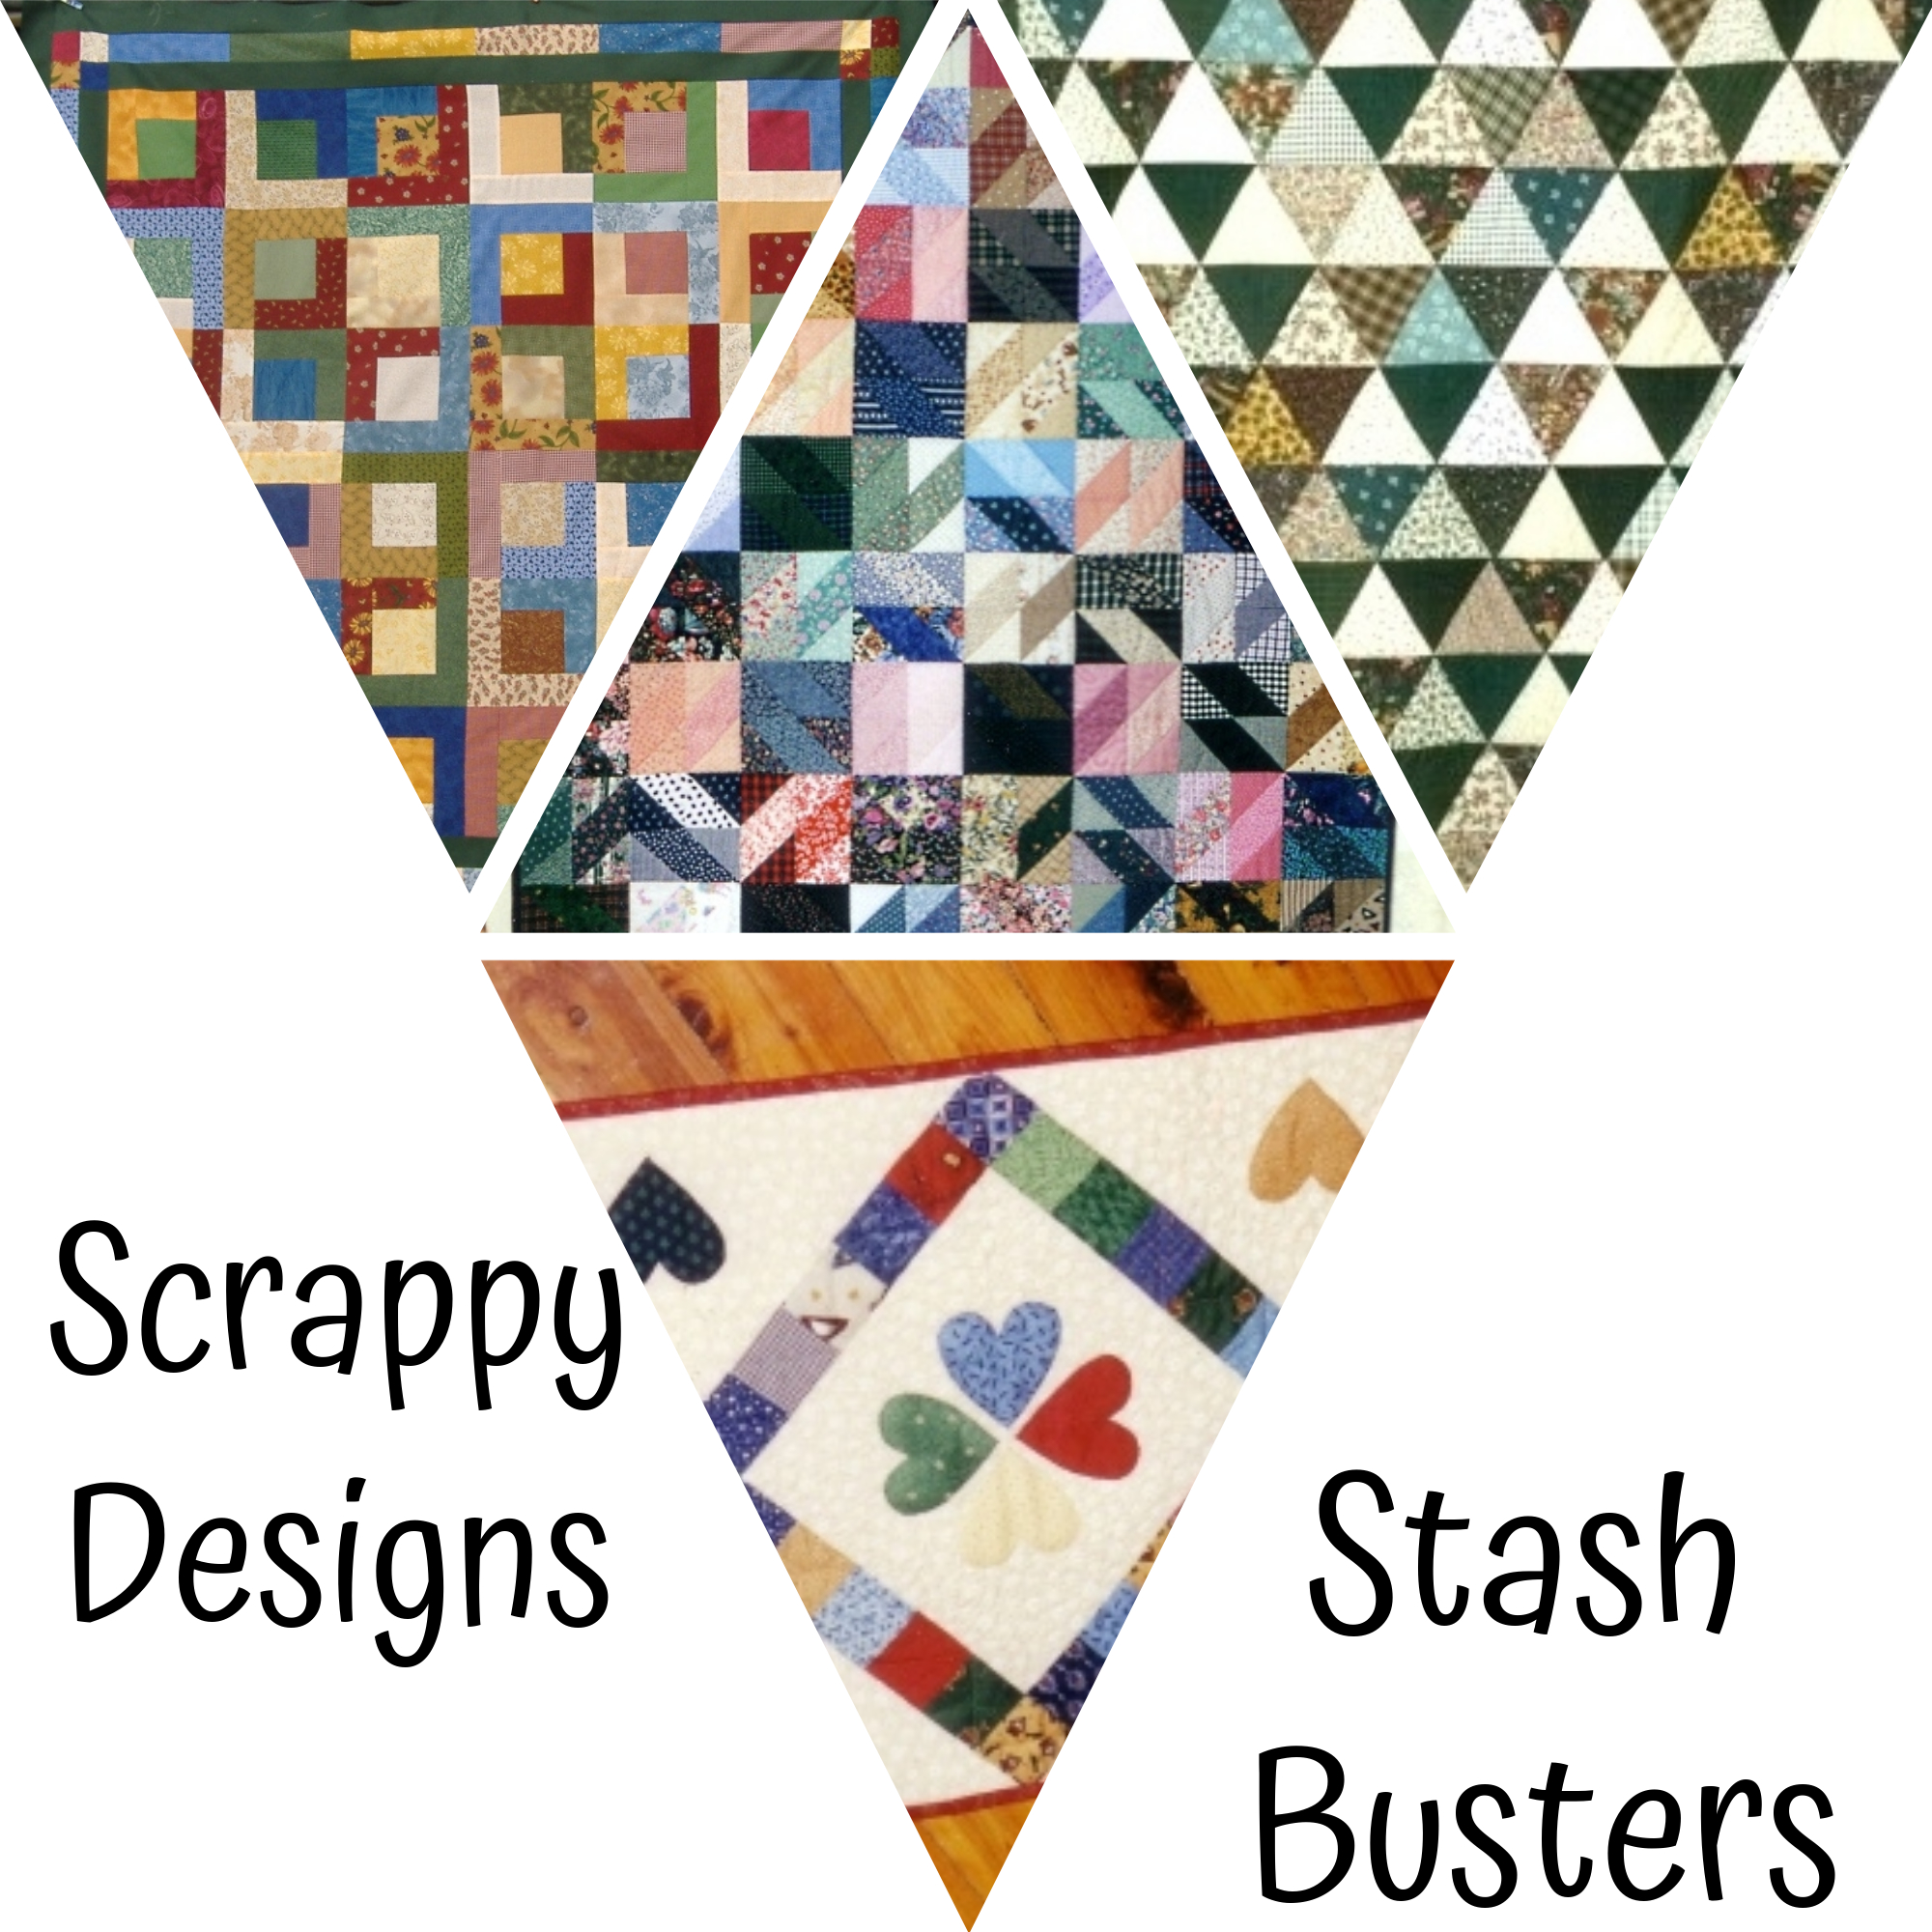 Scrappy Designs and Stash Busters